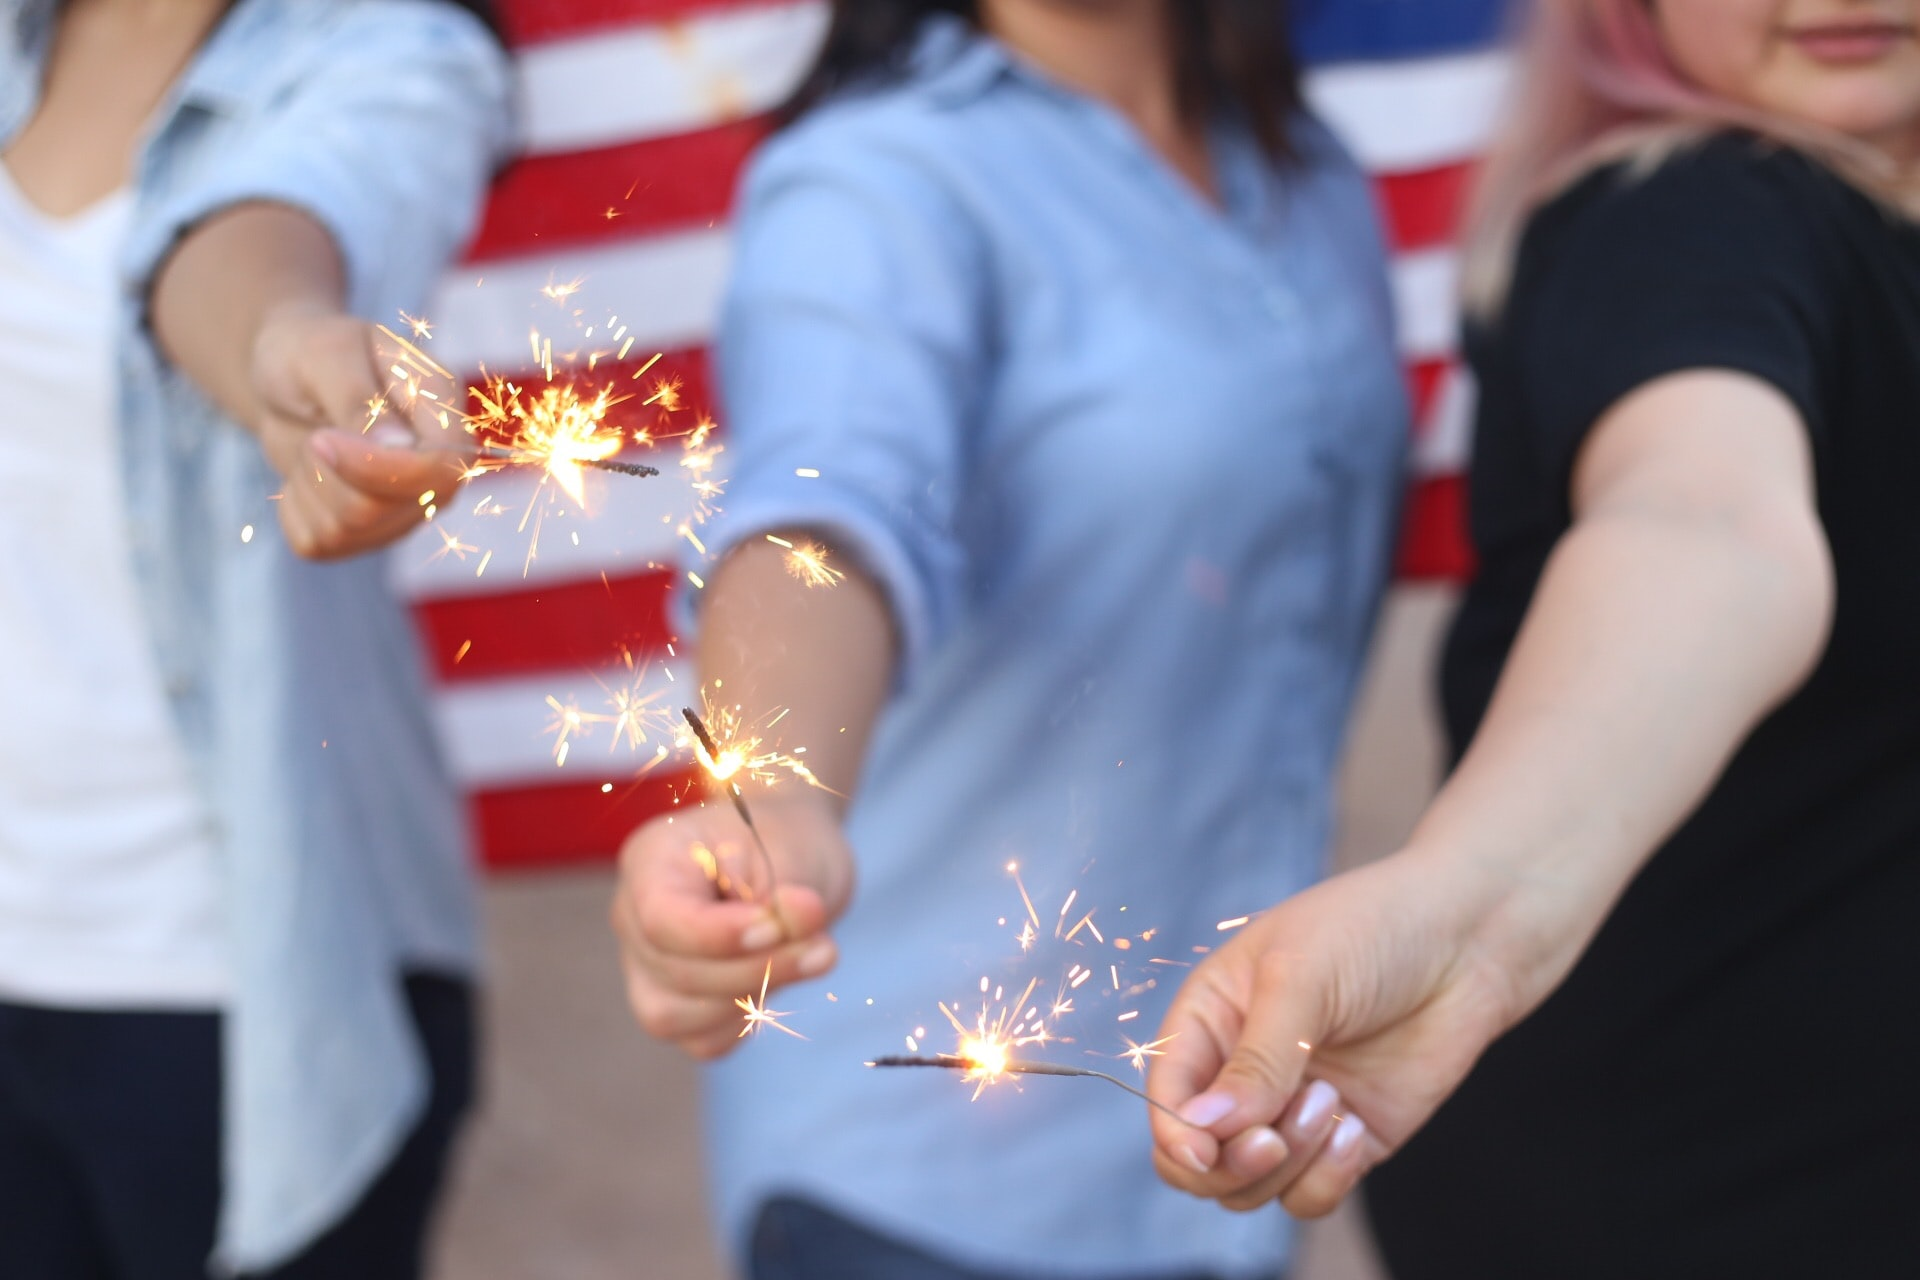 A group of women standing in front of an American flag holding out sparklers